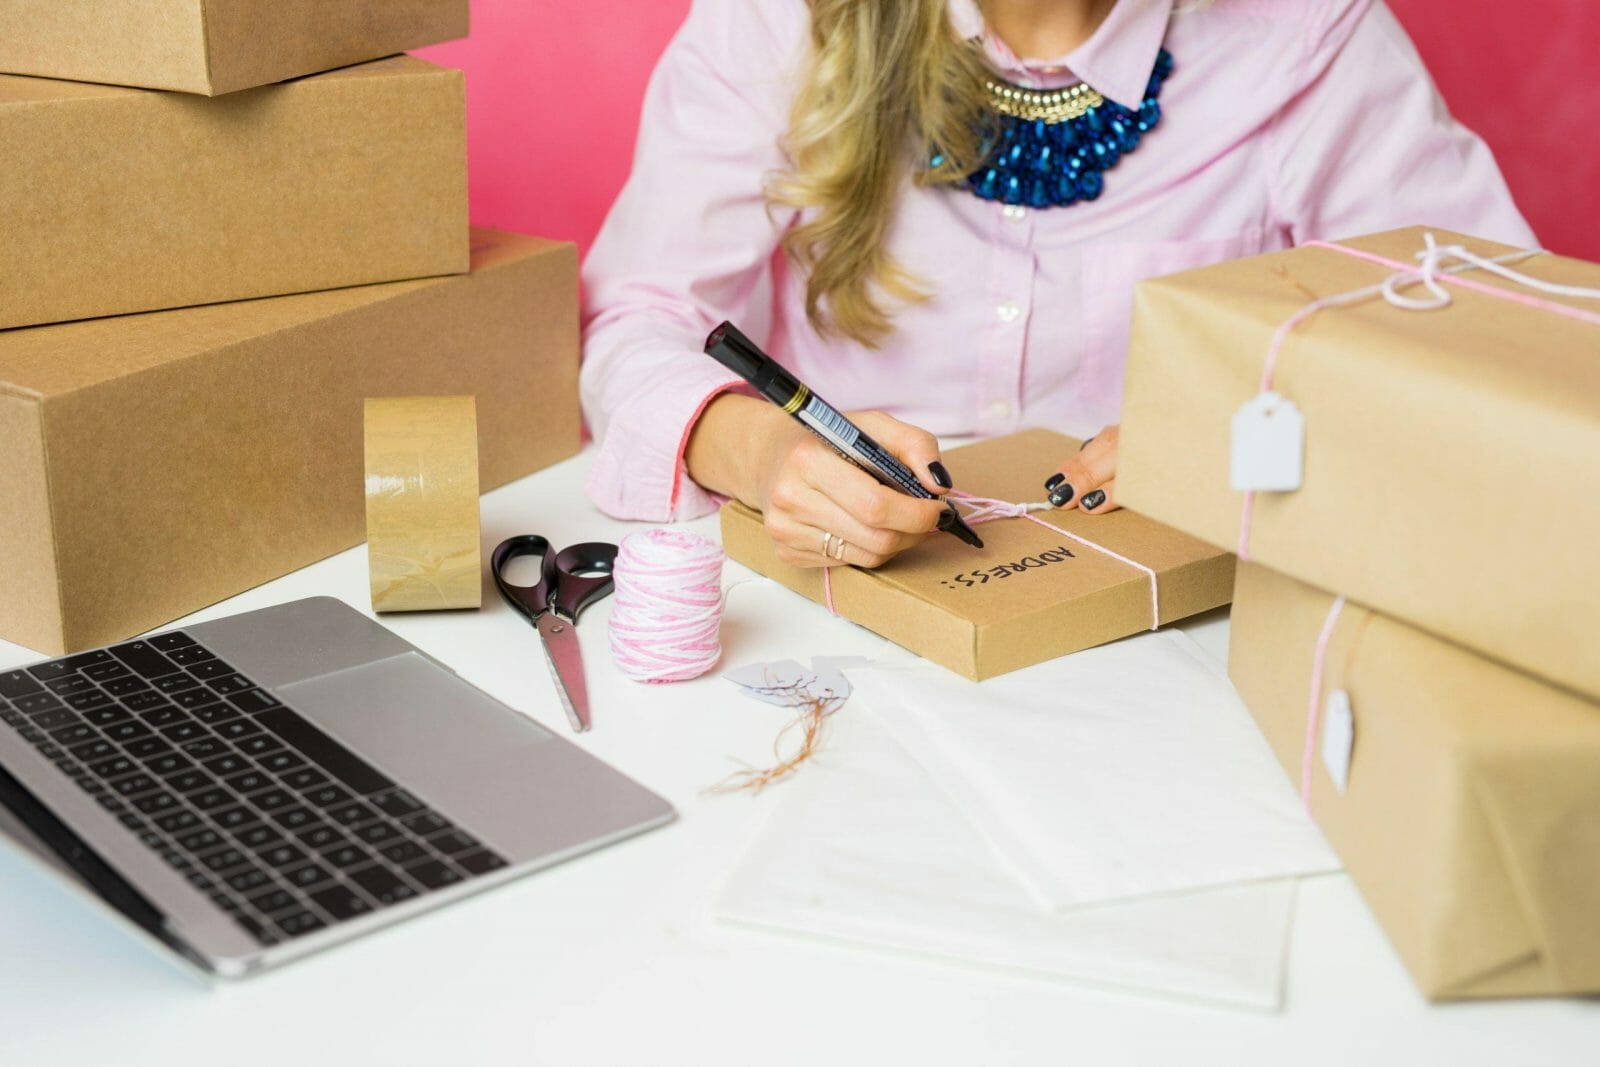 Young woman selling products online and packaging goods for shipping.